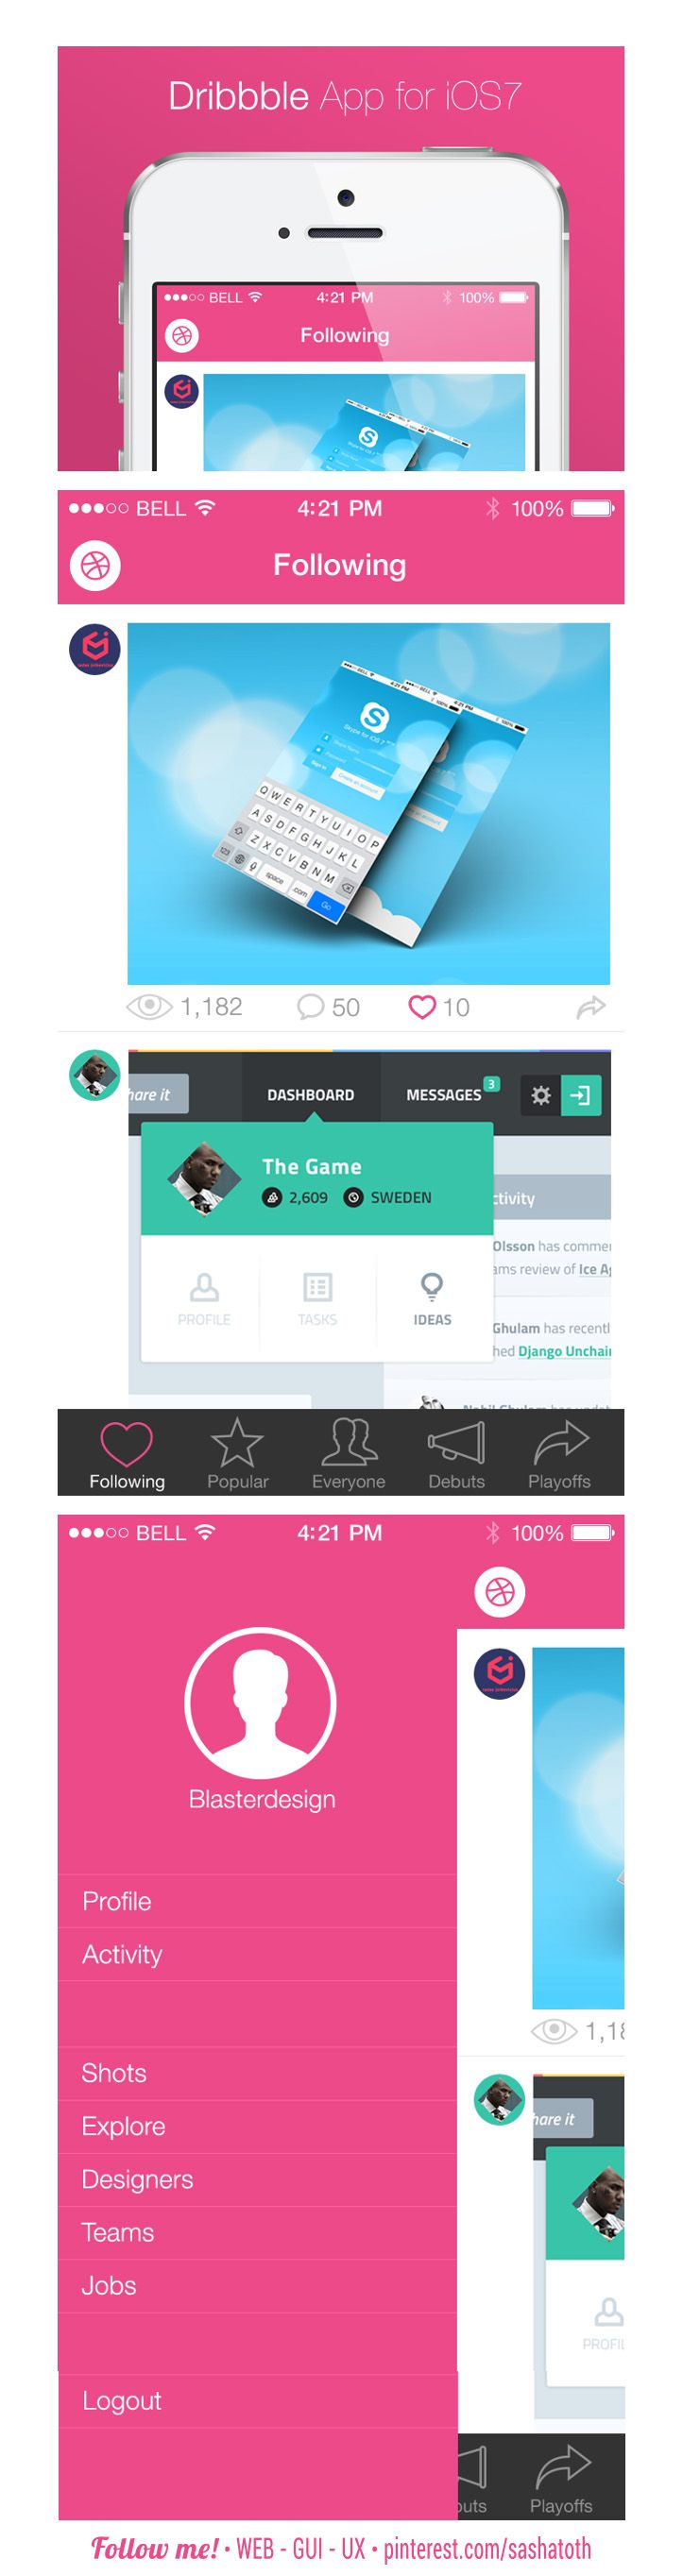 Dribbble App iOS7 by Mesnil Théo, via Behance *** #app #ios #iphone #gui #ui #ux #behance